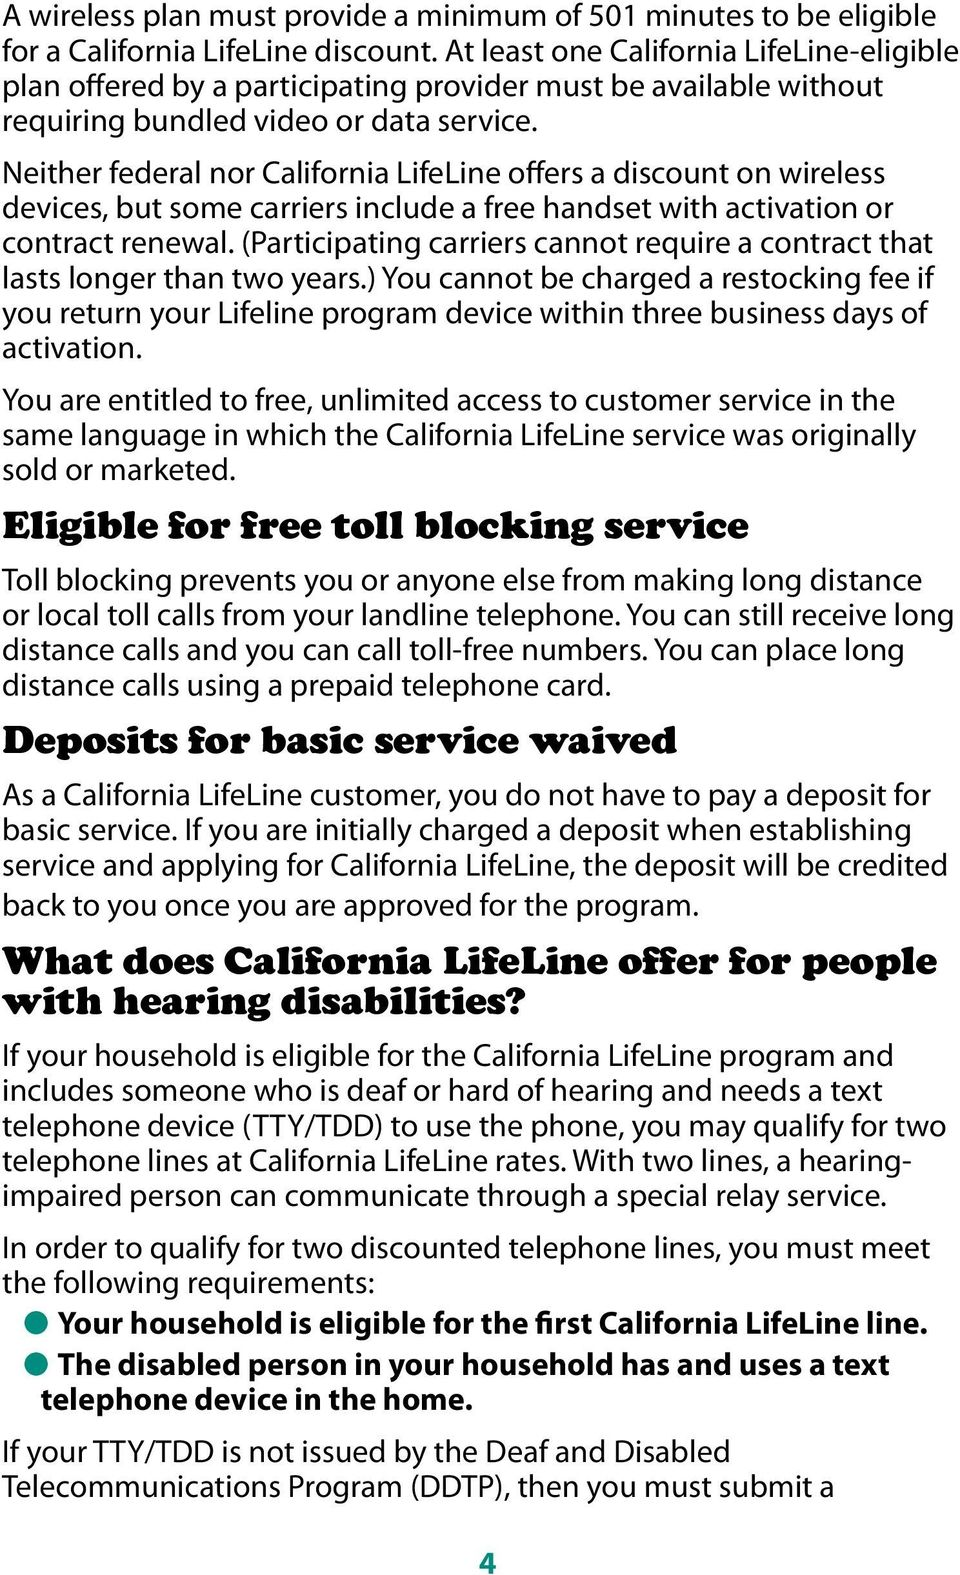 Neither federal nor California LifeLine offers a discount on wireless devices, but some carriers include a free handset with activation or contract renewal.